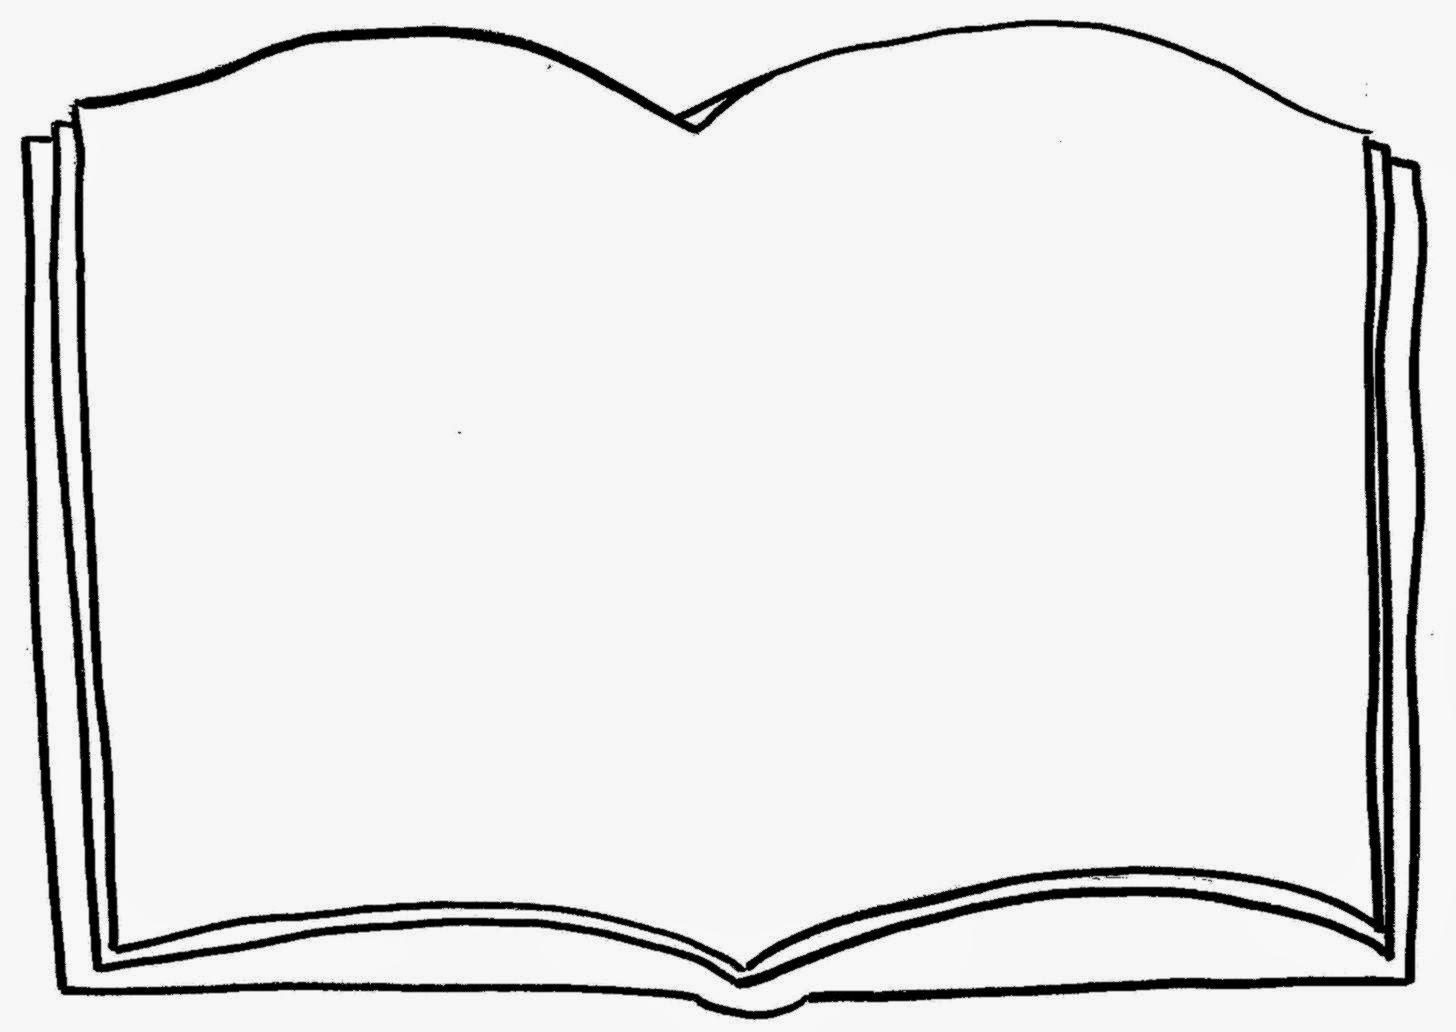 1456x1032 Best Free Open Book Coloring Page Pages Clip Art Image